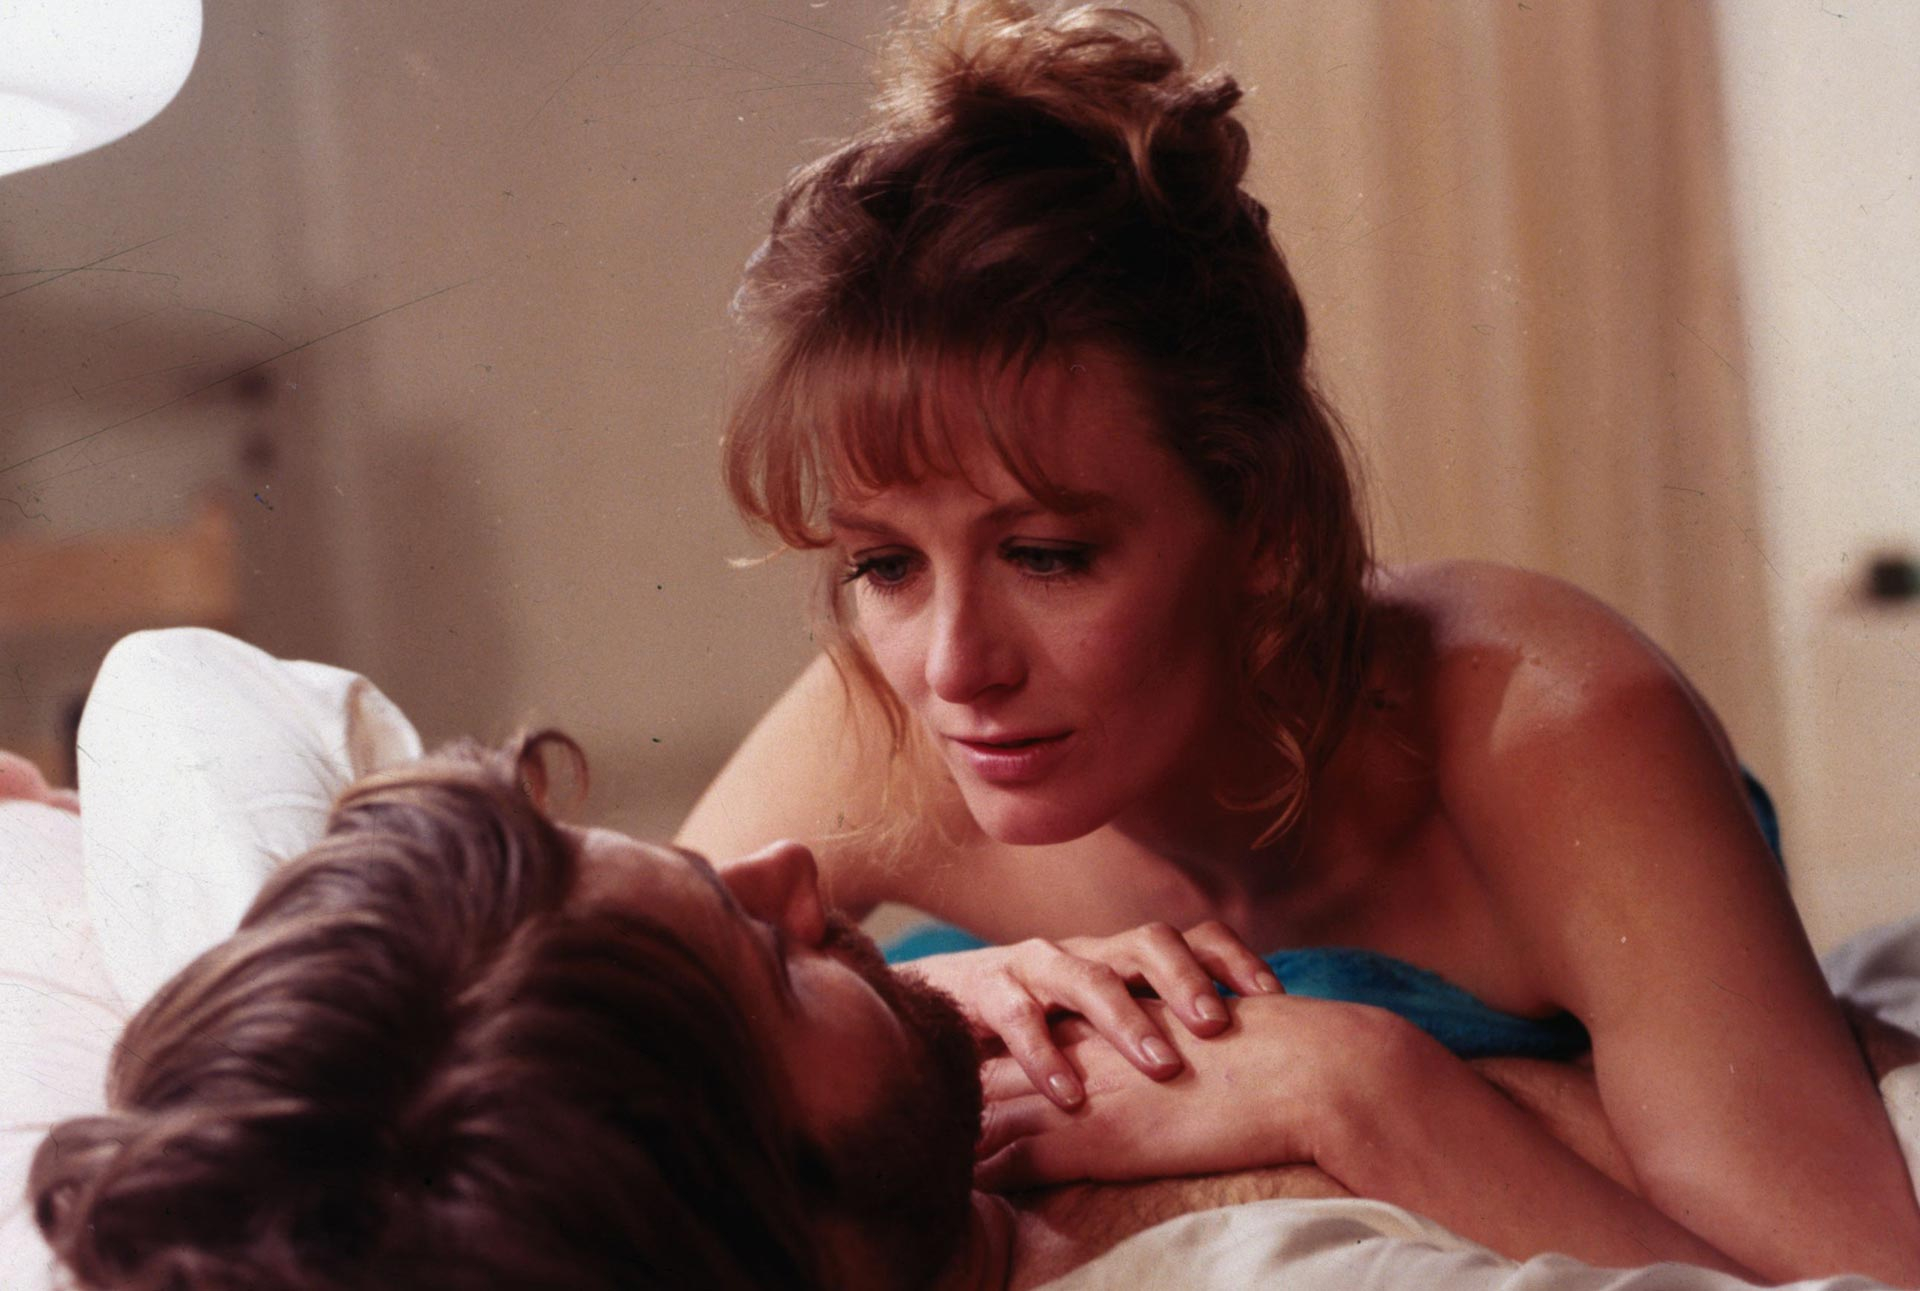 Film still of a woman laying on top of a man, they are looking at each other face to face